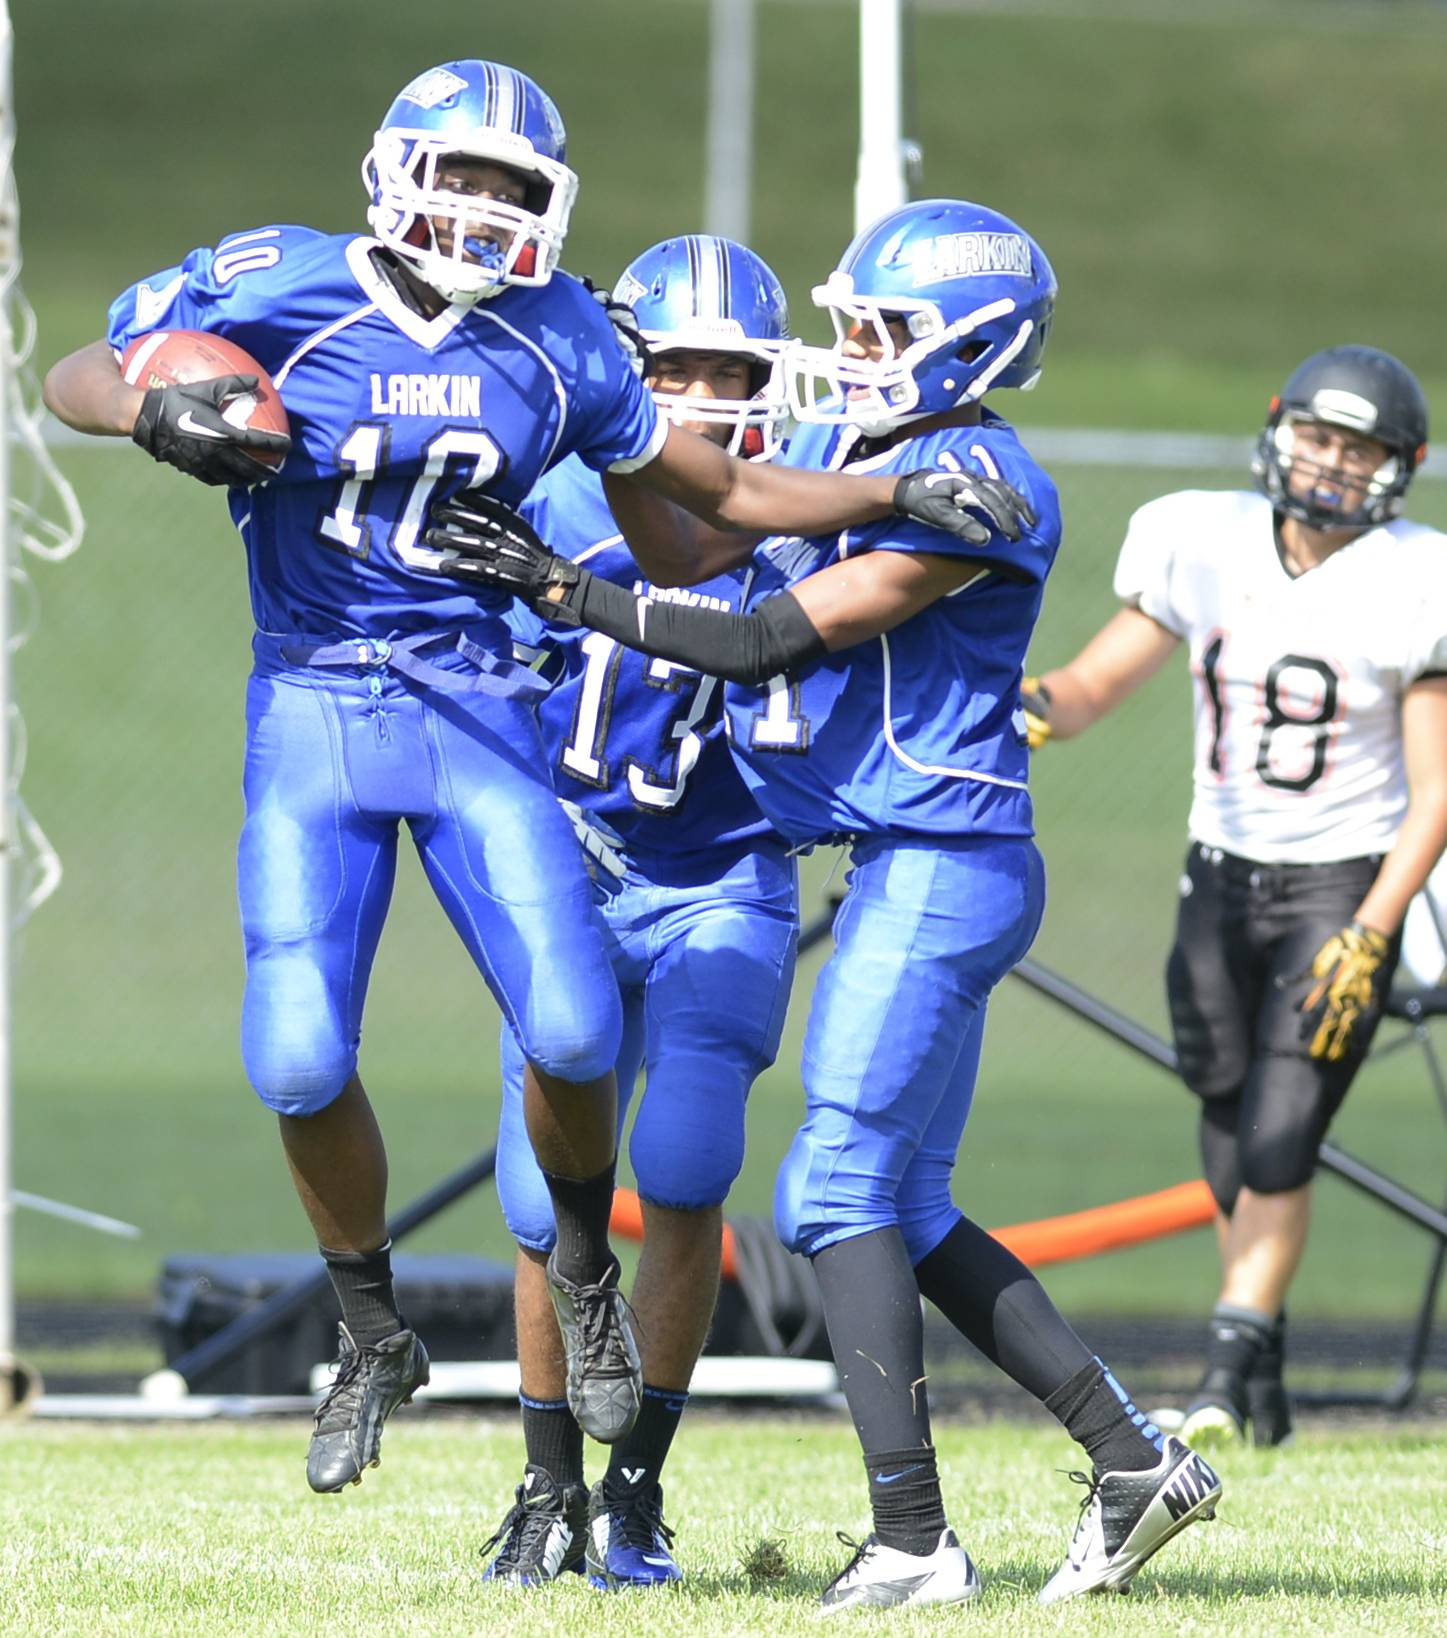 Larkin's Deshawn Steward (10) celebrates a touchdown after scooping up a teammate's fumble against McHenry Saturday at Memorial Field in Elgin.